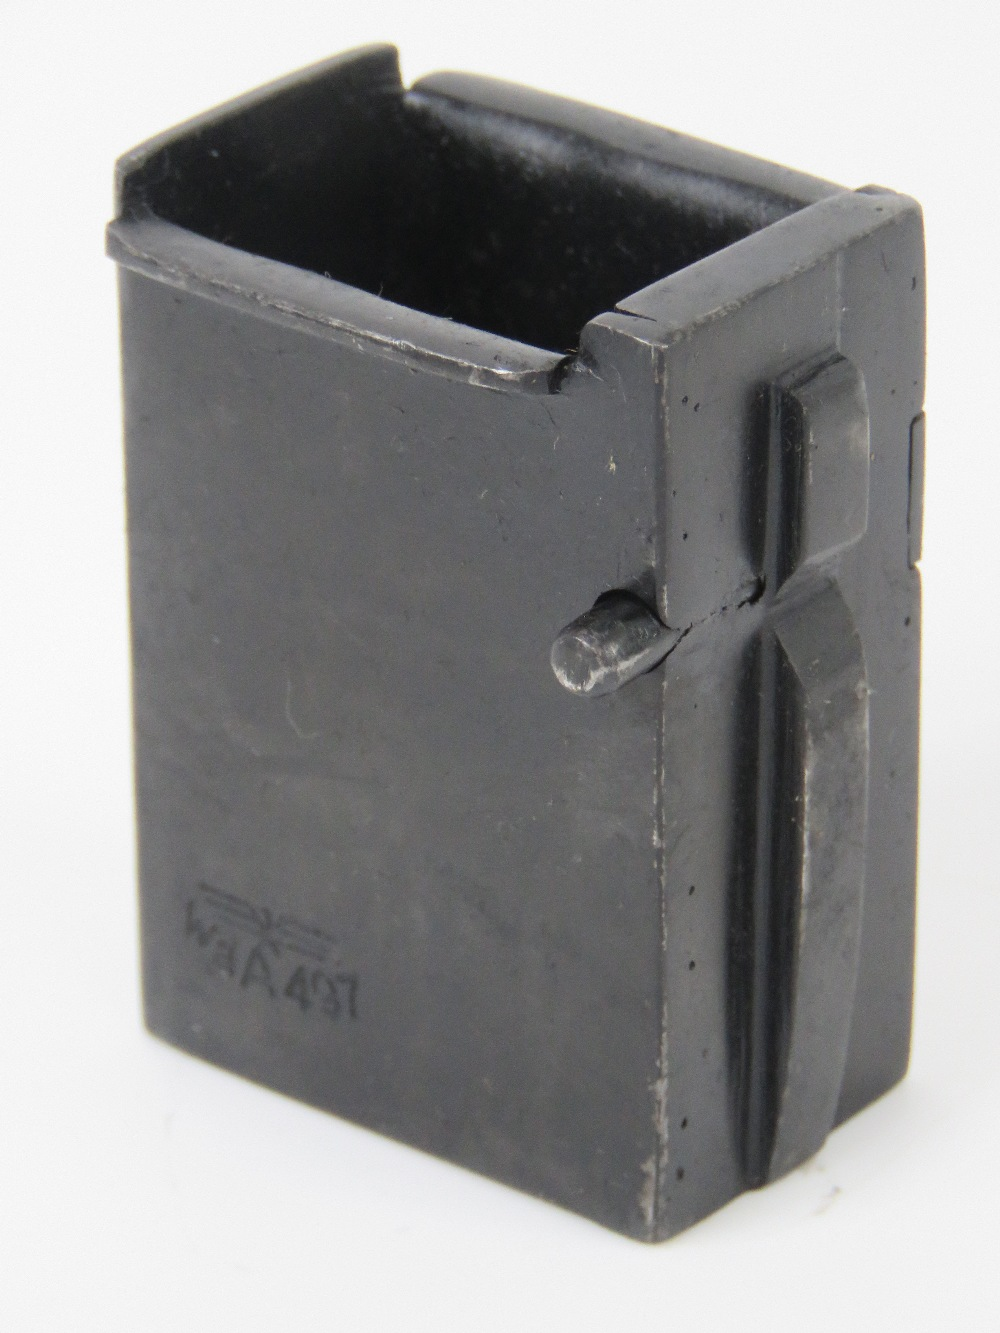 A German WWII MP40 magazine adapter to convert PPSH 41 Russian SMG to accept MP40 Magazines.